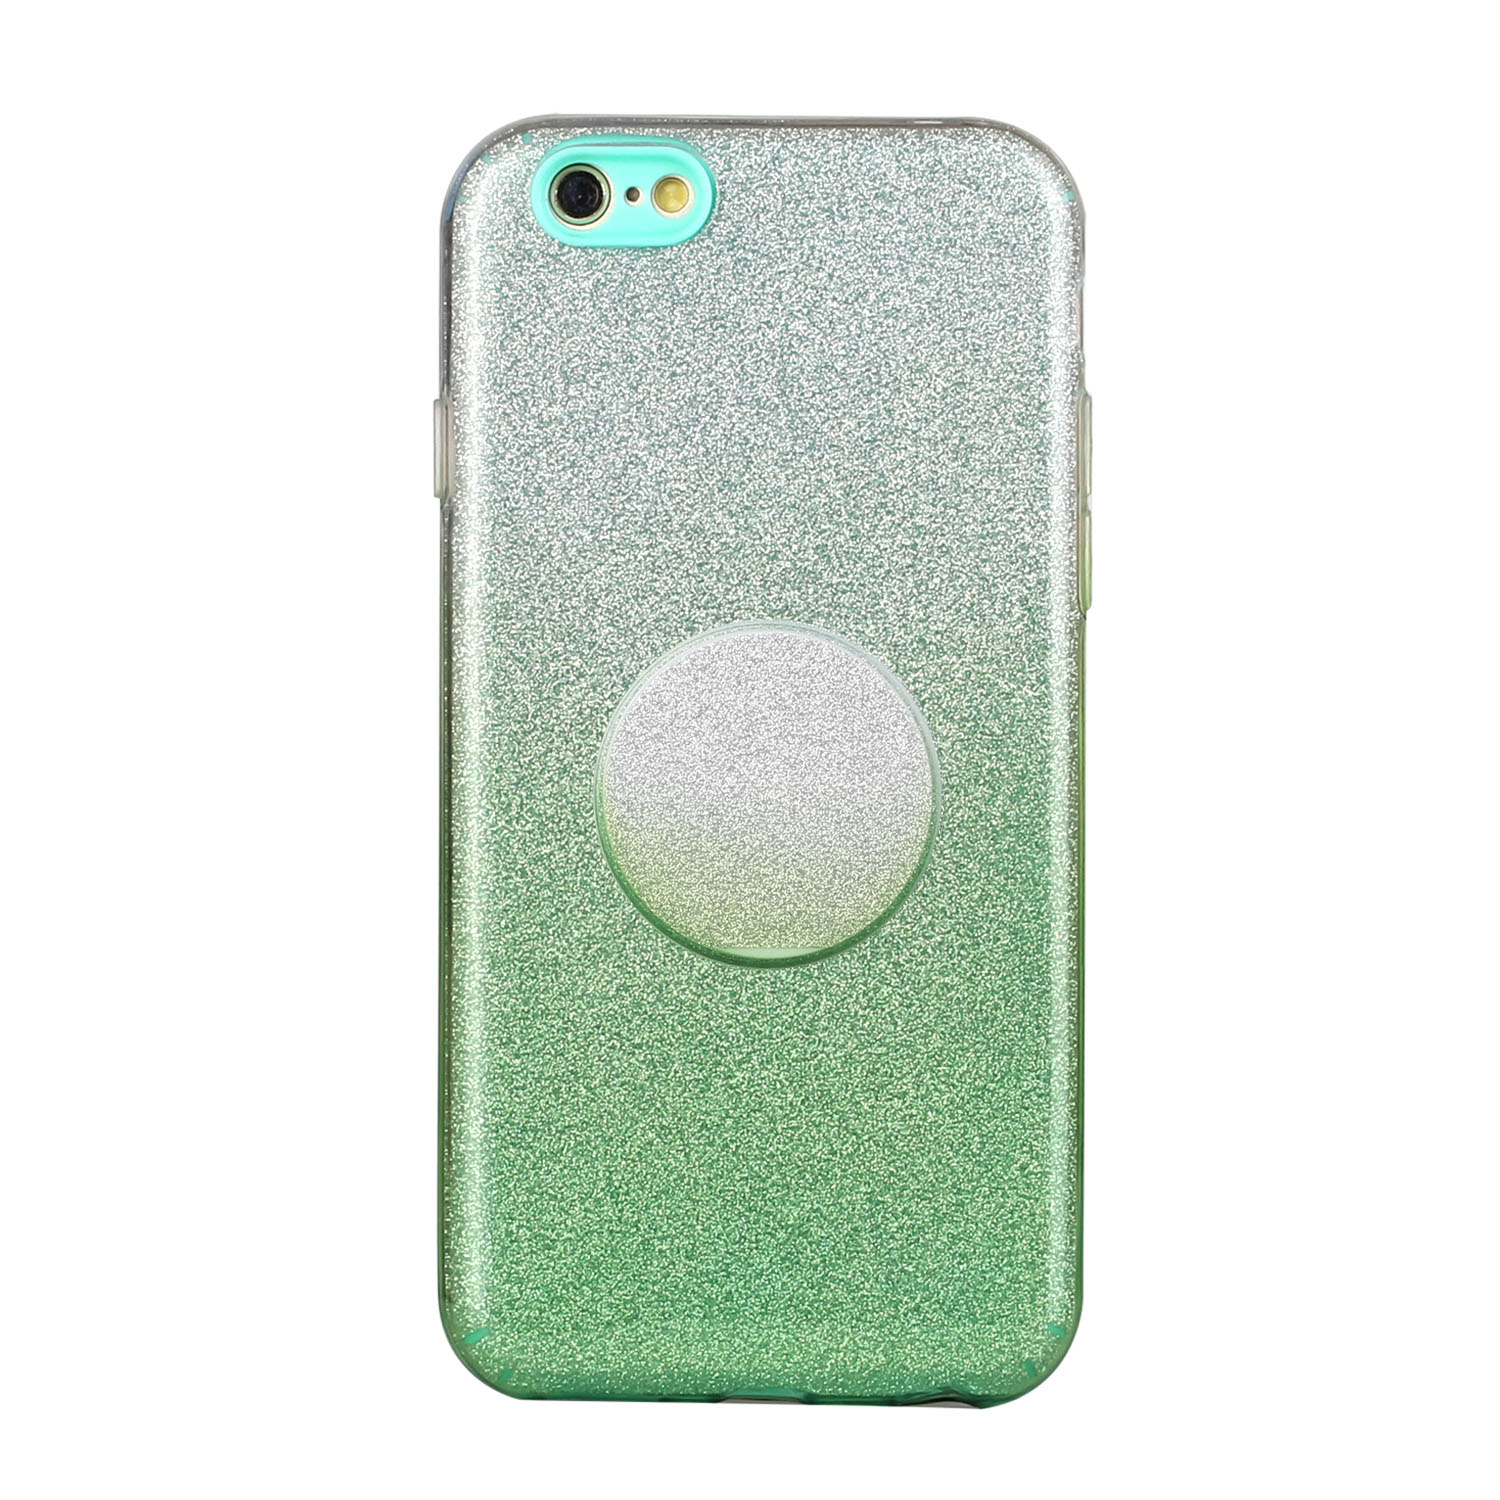 For iphone 6/6S/6 plus/6S plus/7/8/SE 2020 Phone Case Gradient Color Glitter Powder Phone Cover with Airbag Bracket green